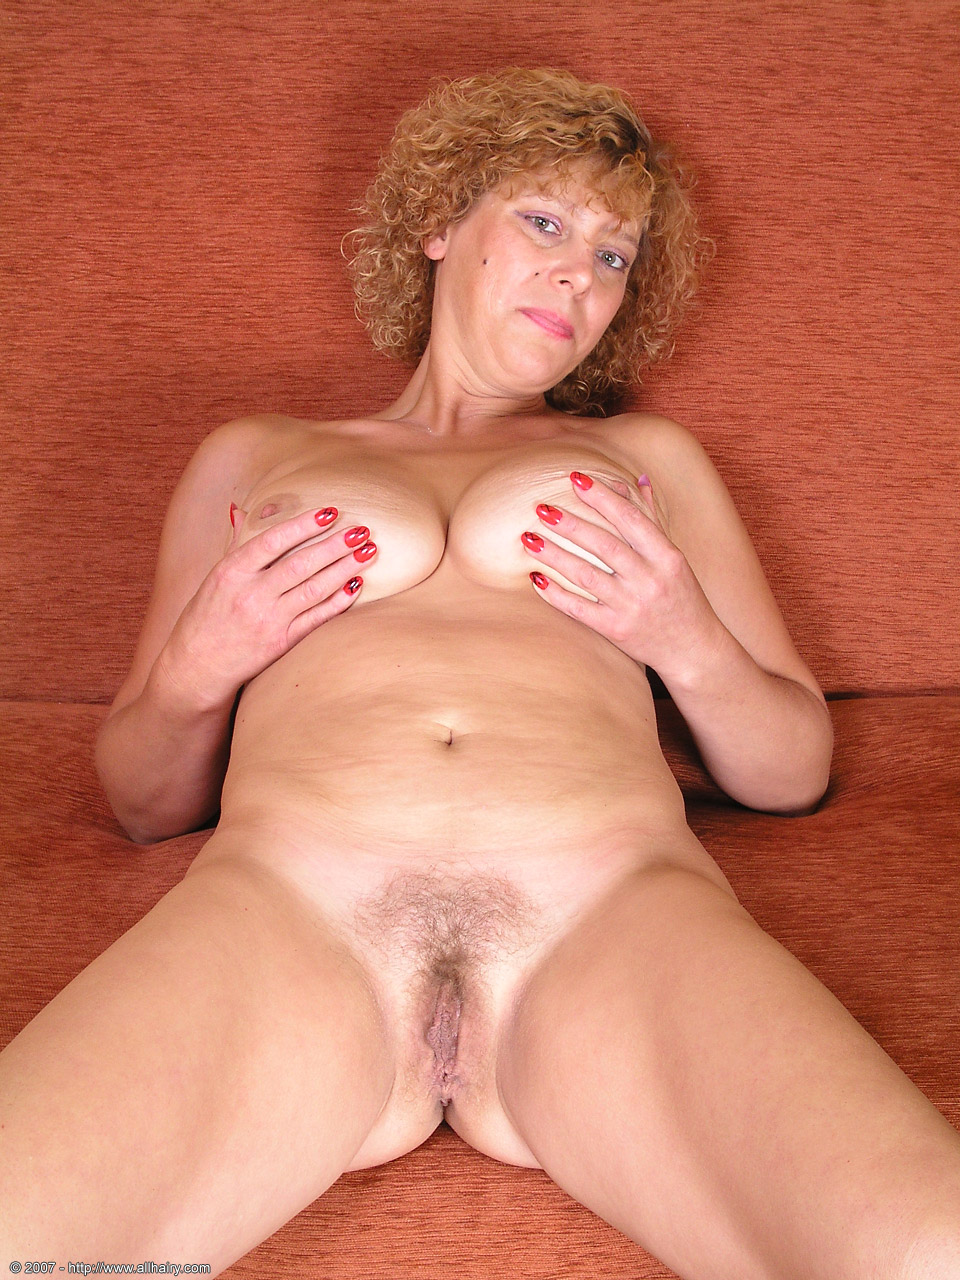 Free hairy nude women video agree